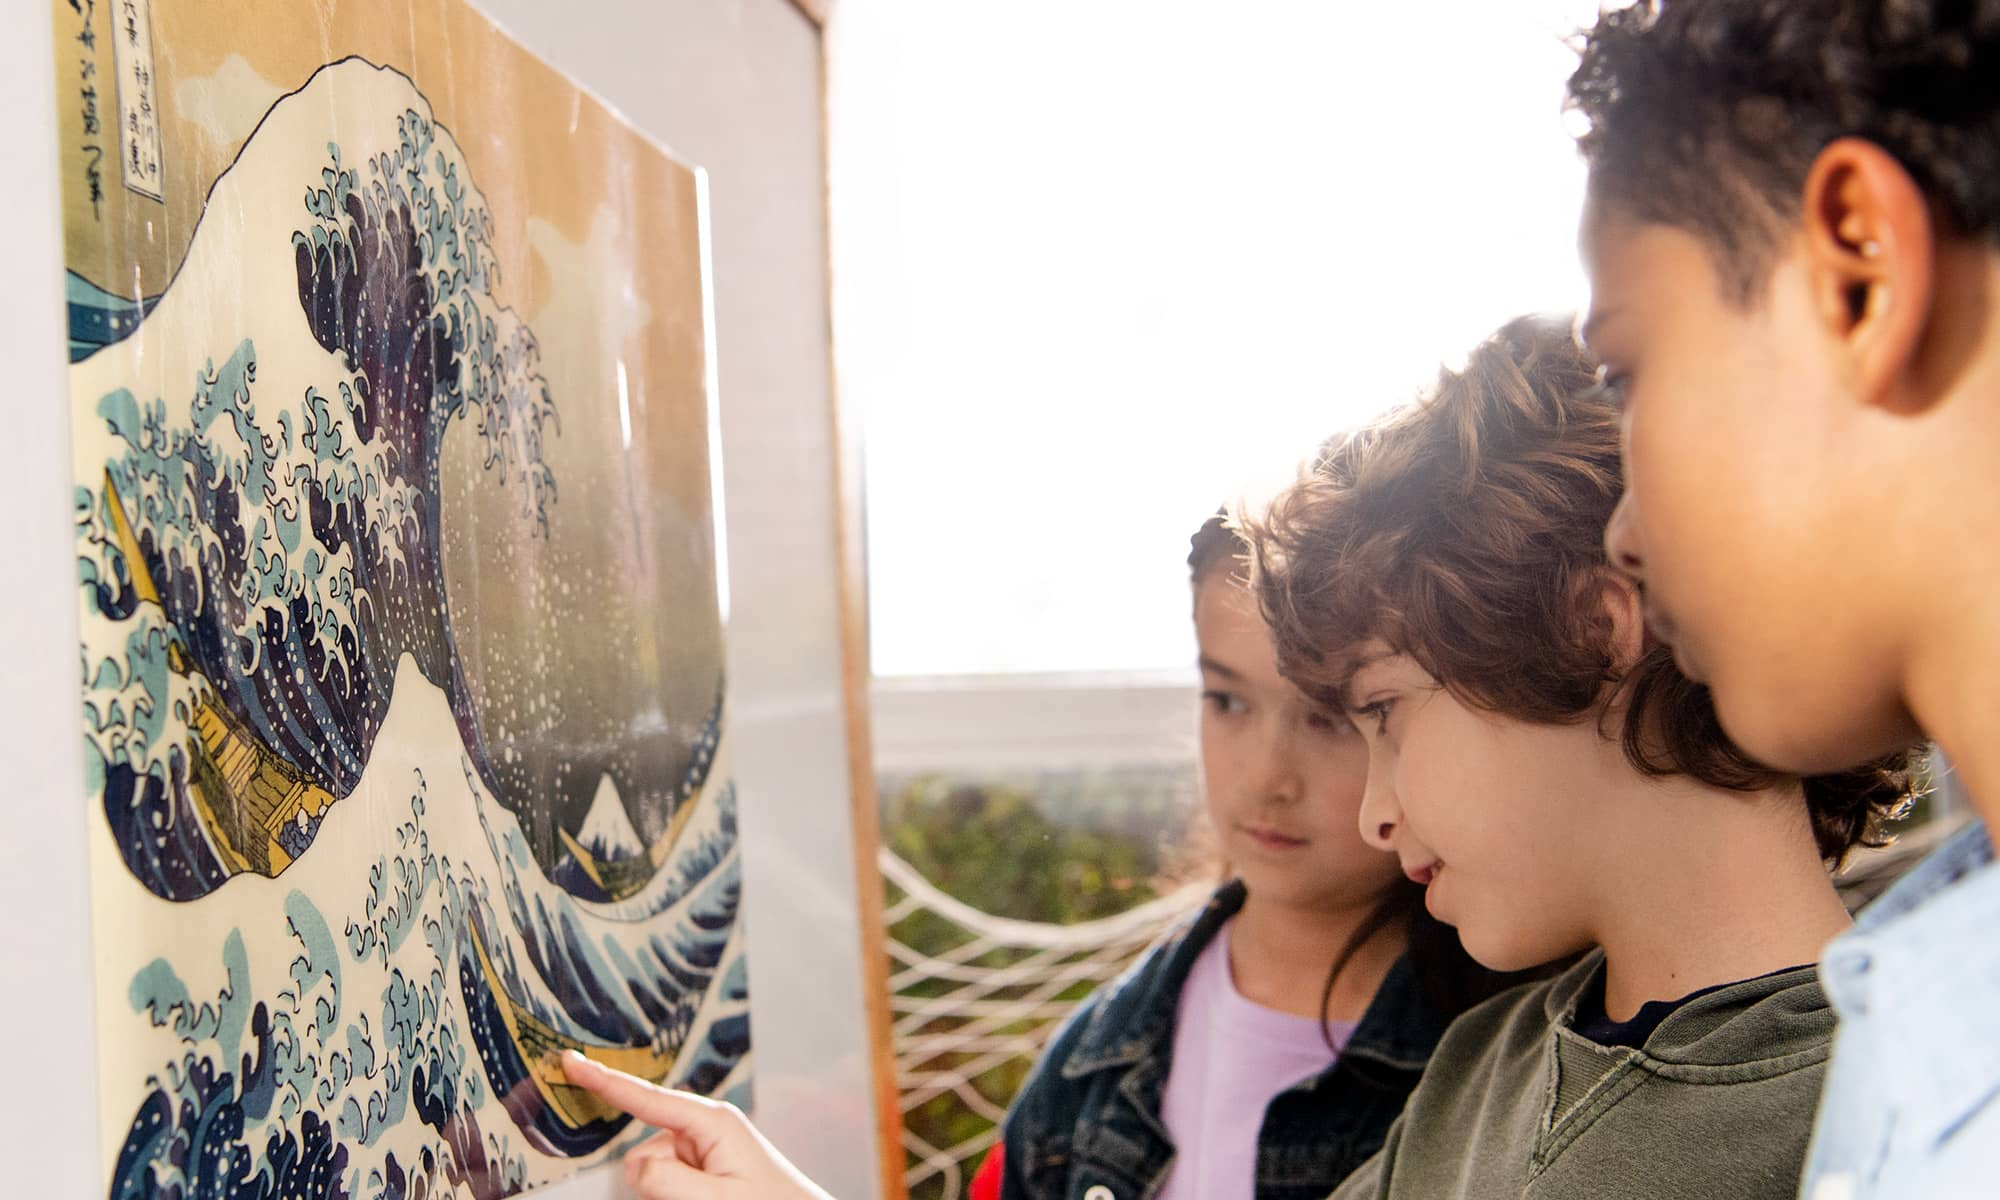 A student points to a detail in the Wave of Kanagawa painting.